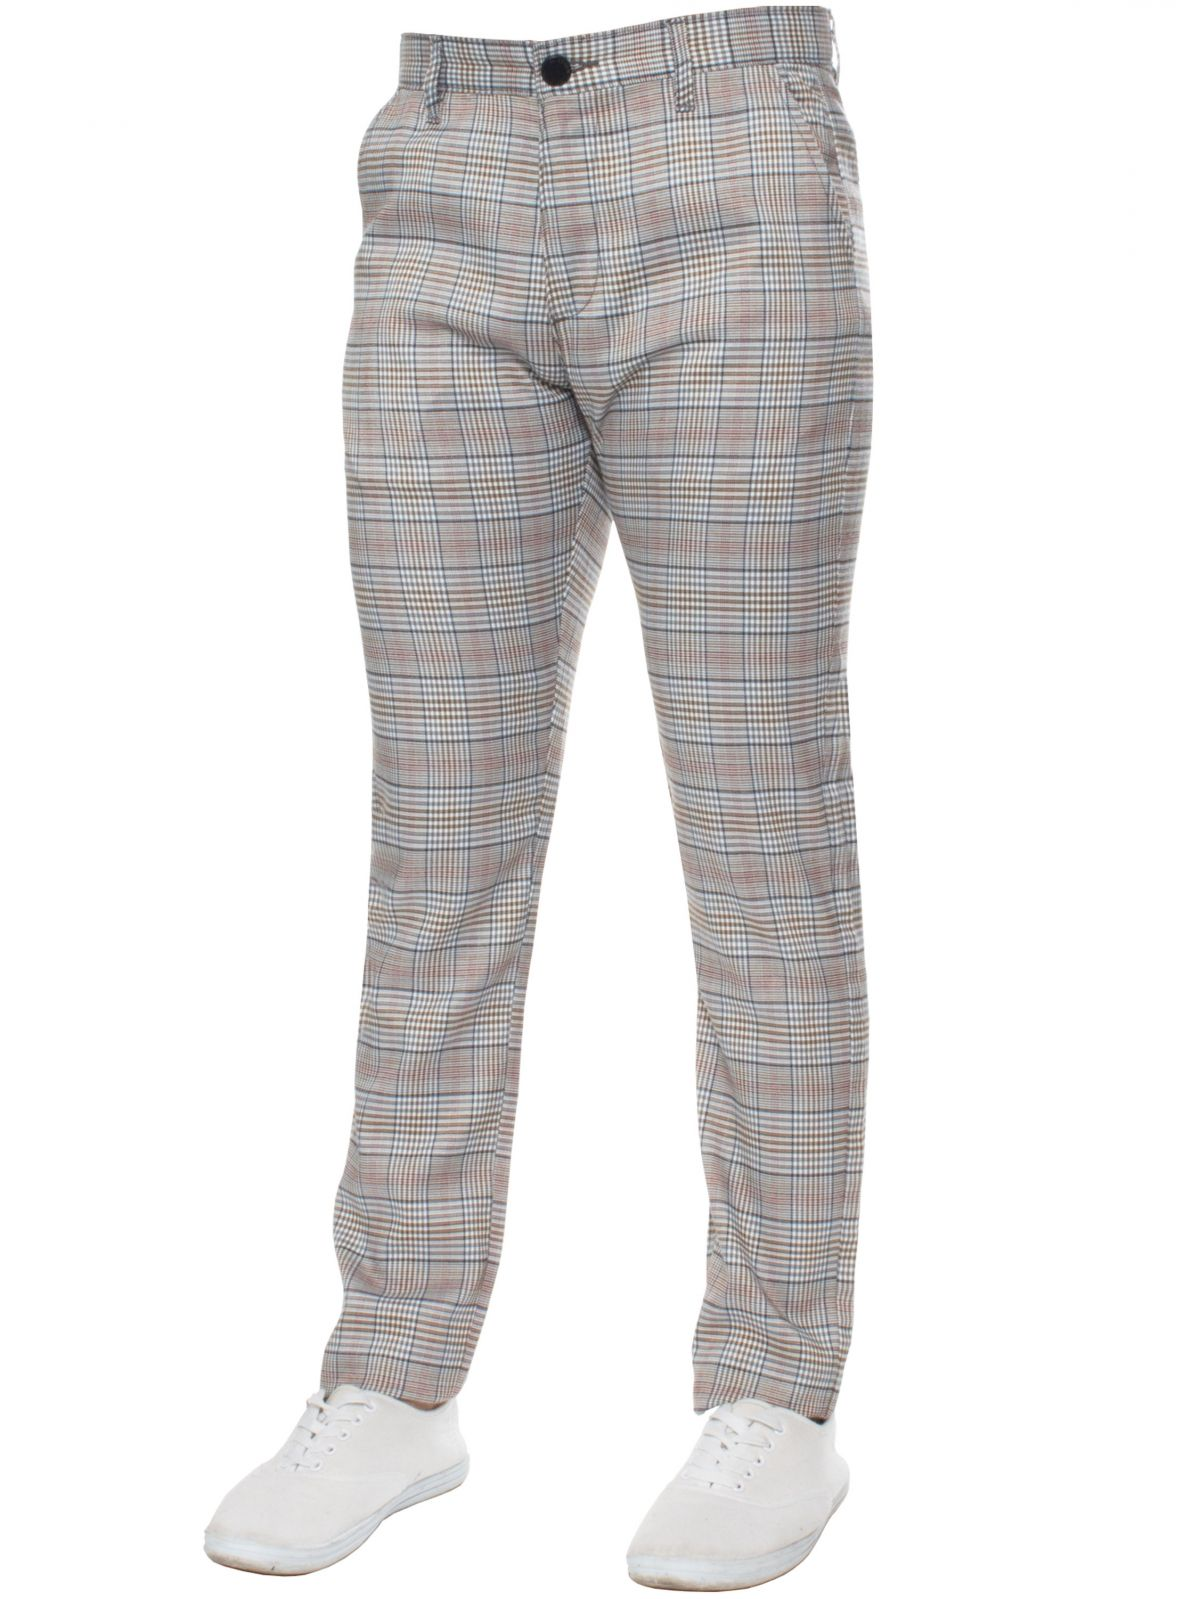 ENZO Designer Jeans | Mens Check Slim Fit Tapered Casual Chinos